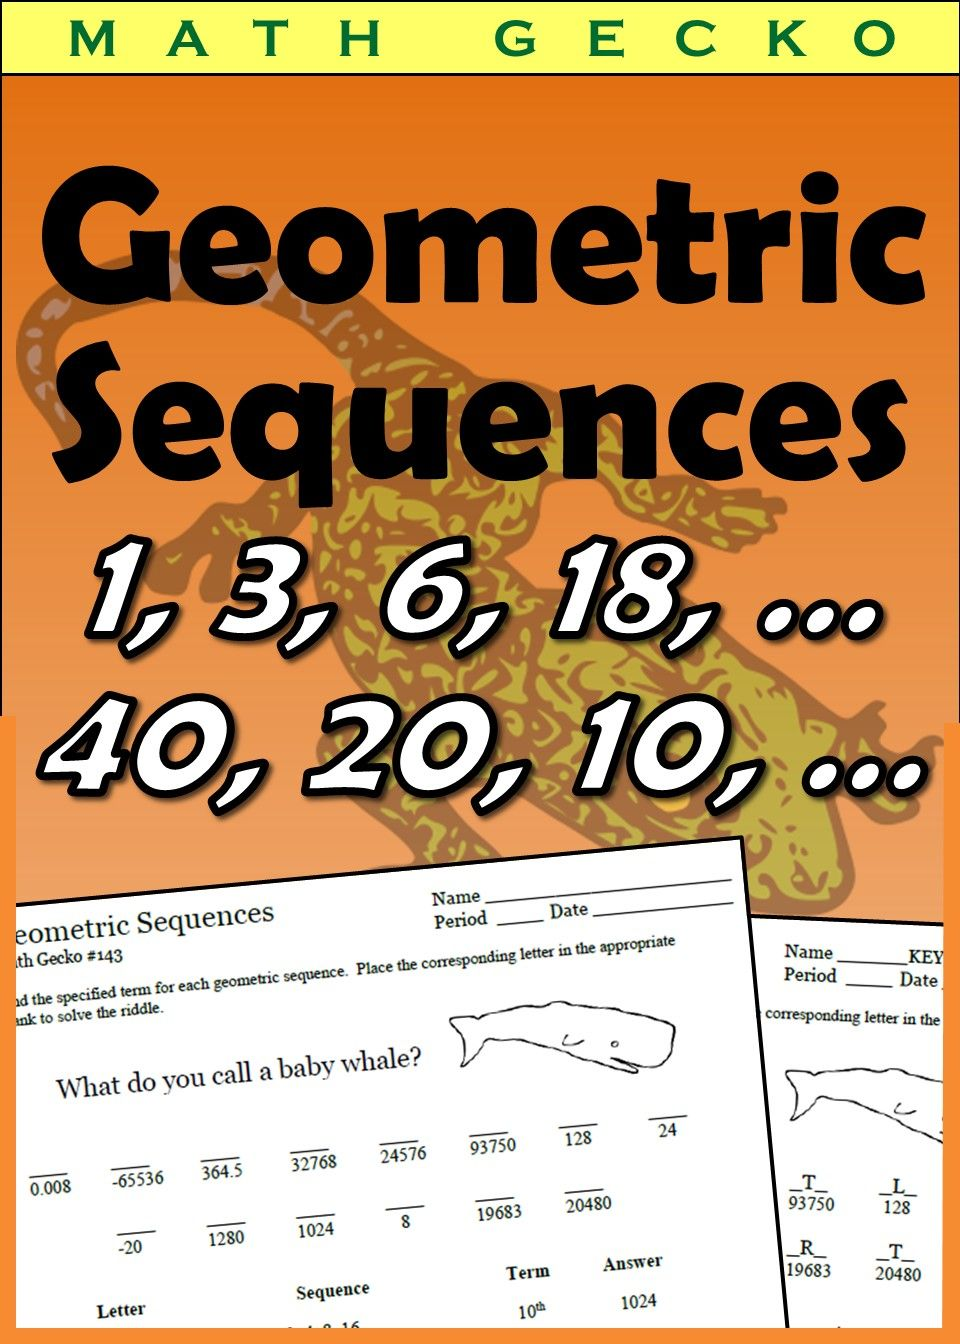 Geometric Sequences Riddle In 2021 Geometric Sequences Riddles Geometric